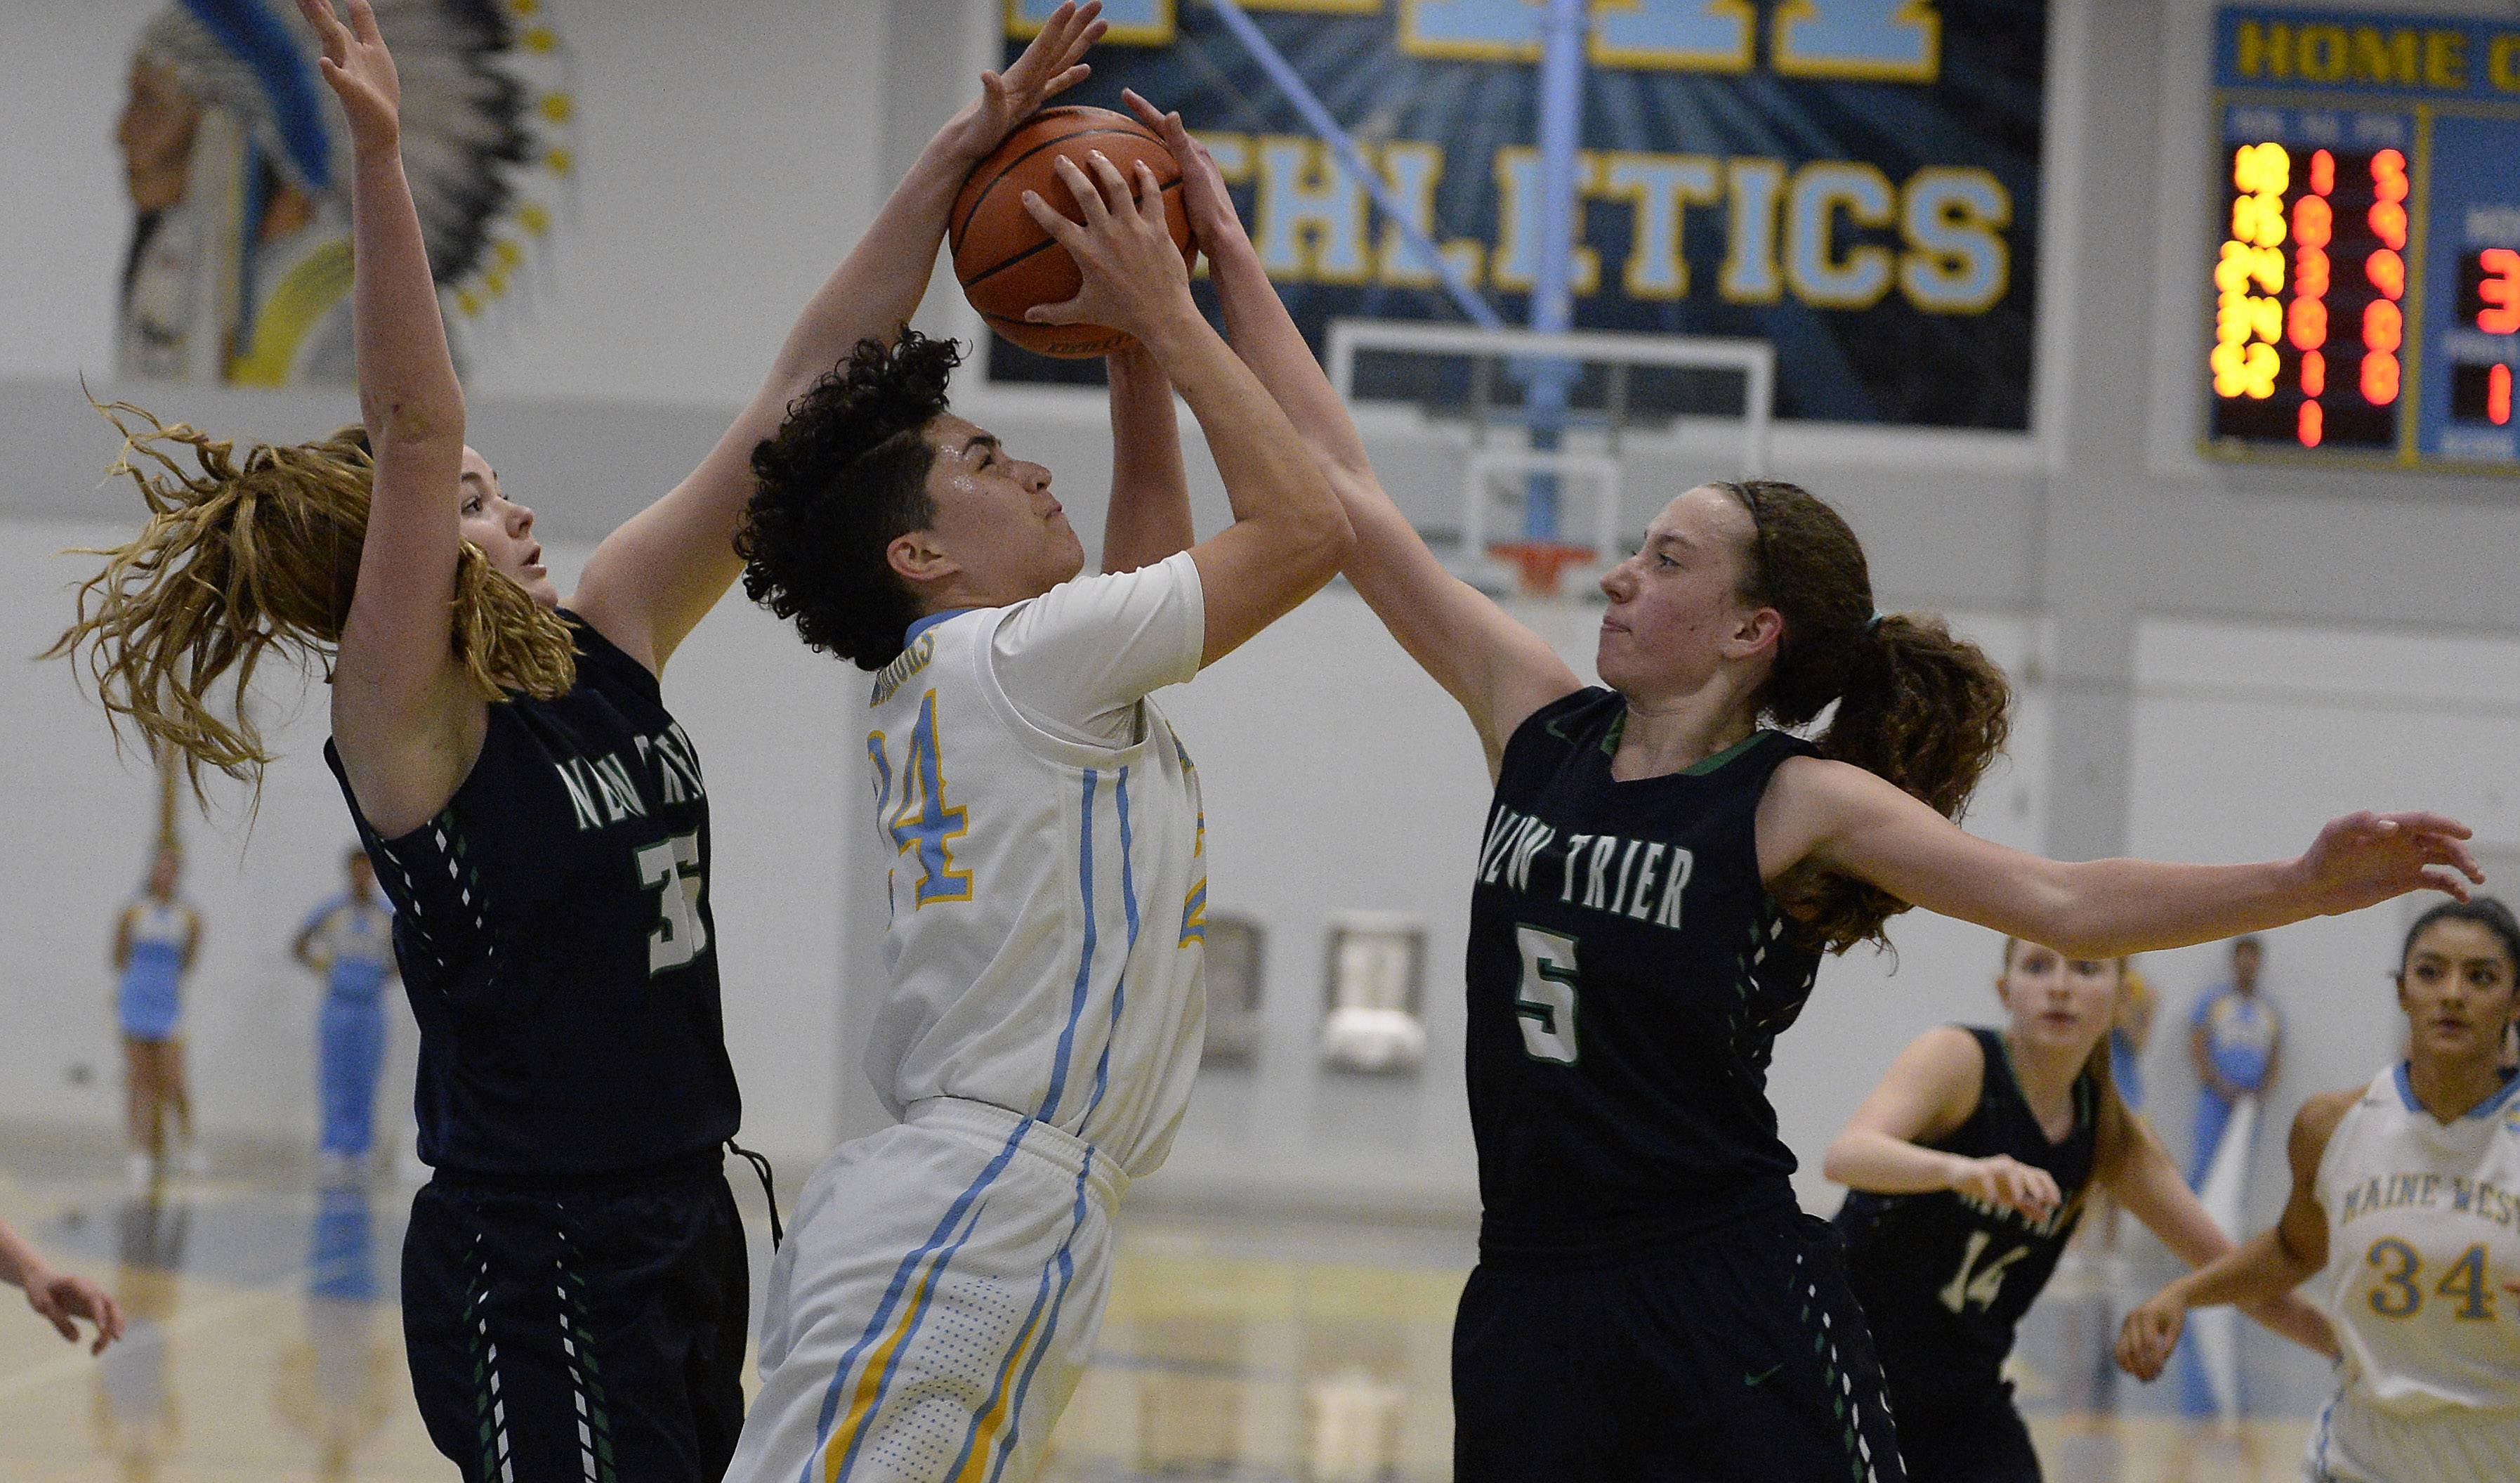 Maine West's Alisa Fallon goes up against Taite Ryan and Cate Murdock on a drive in the Warriors' regional final win over New Trier at Maine West on Thursday.